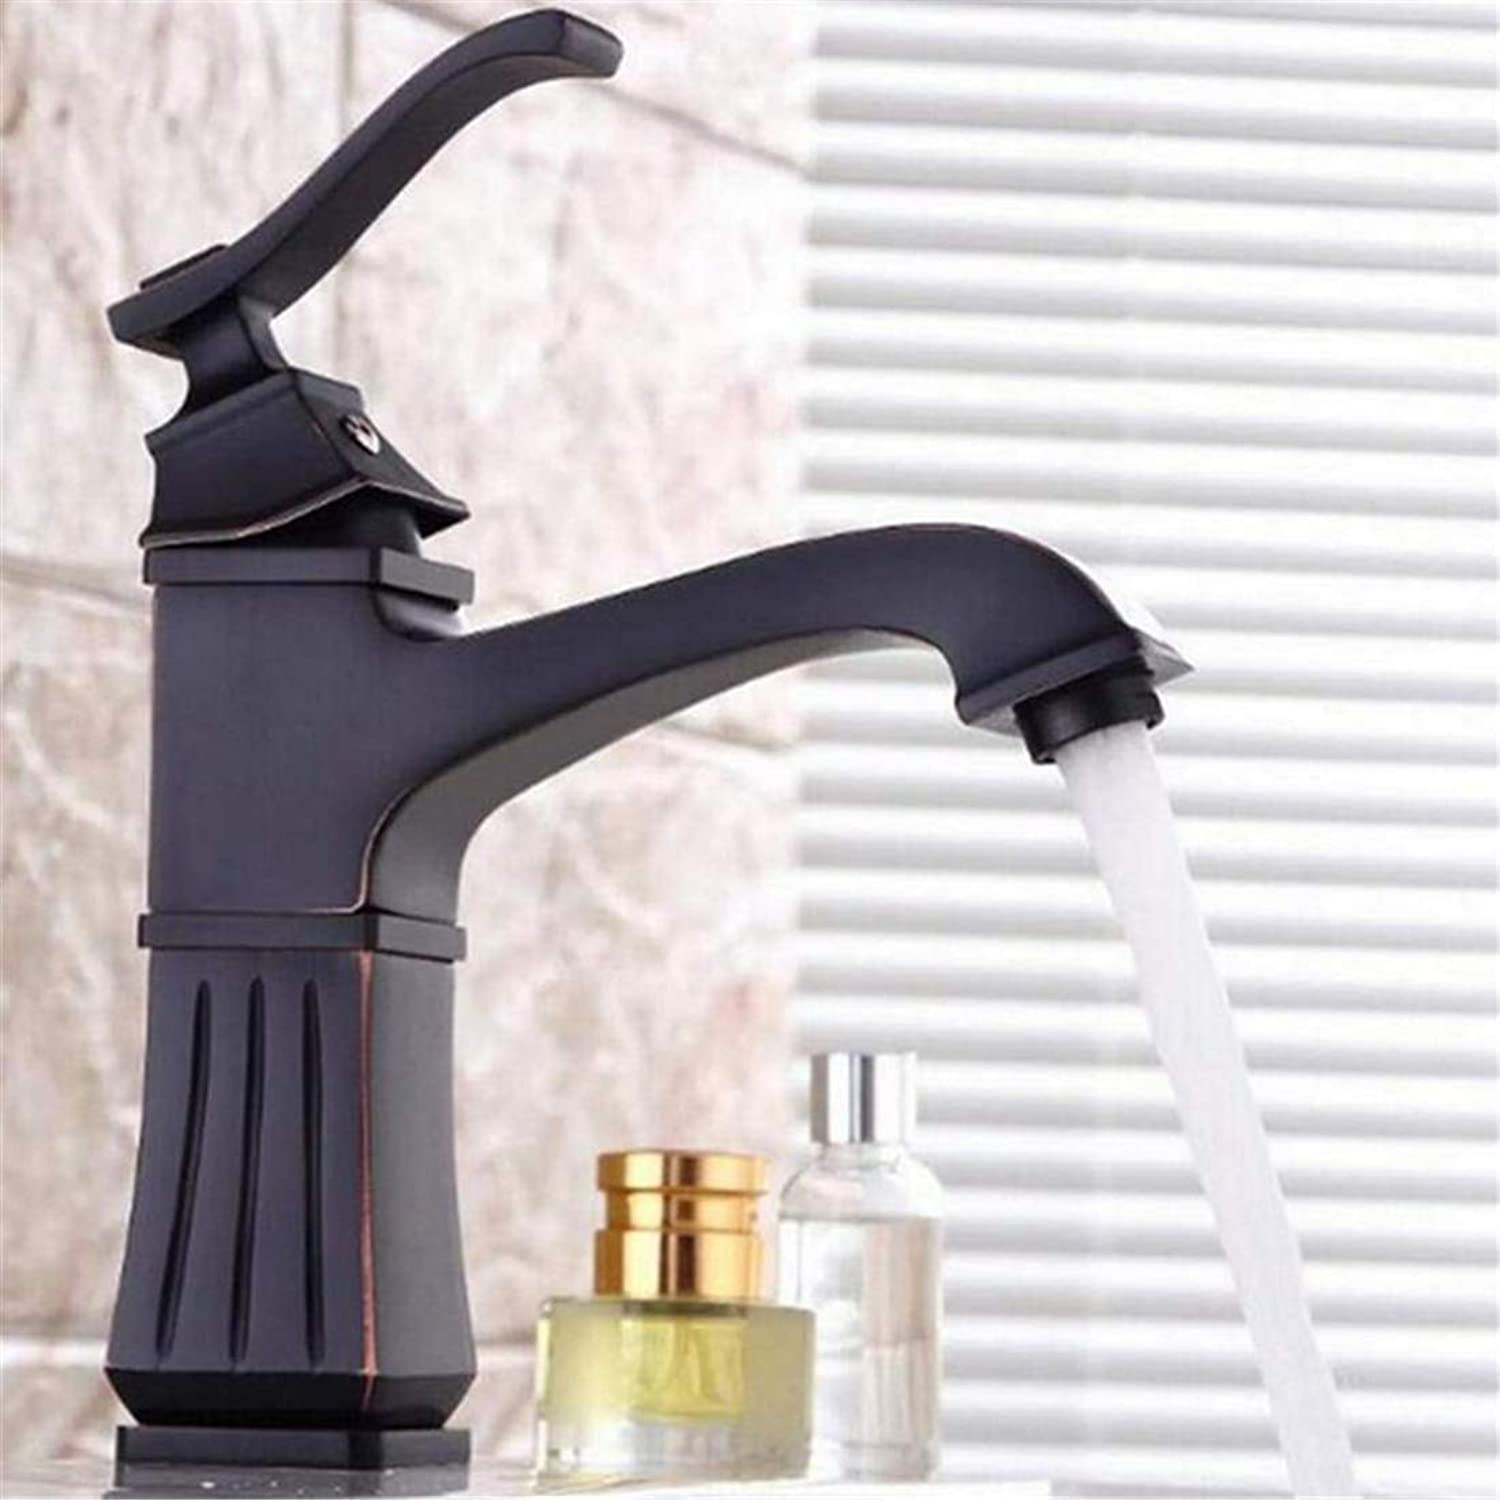 Miscelatore Cucinafaucet Sink Tapsbasin Faucet Hot And Cold Water Tap Water Faucet By Rmbearmoni